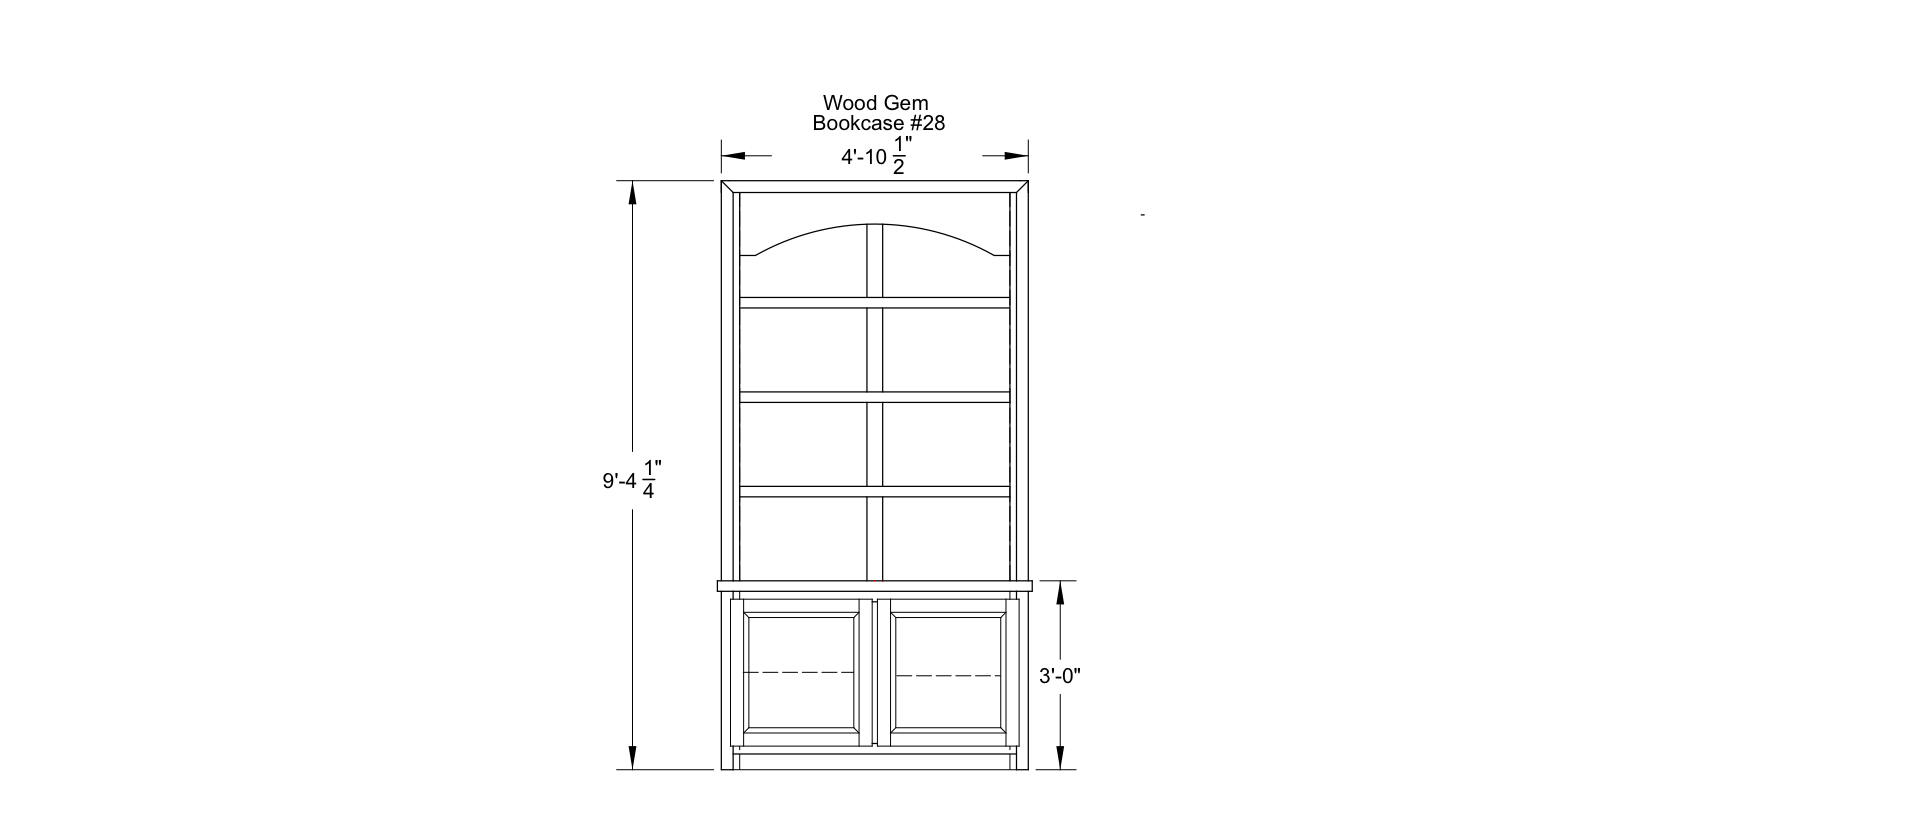 Bookcase #28.png